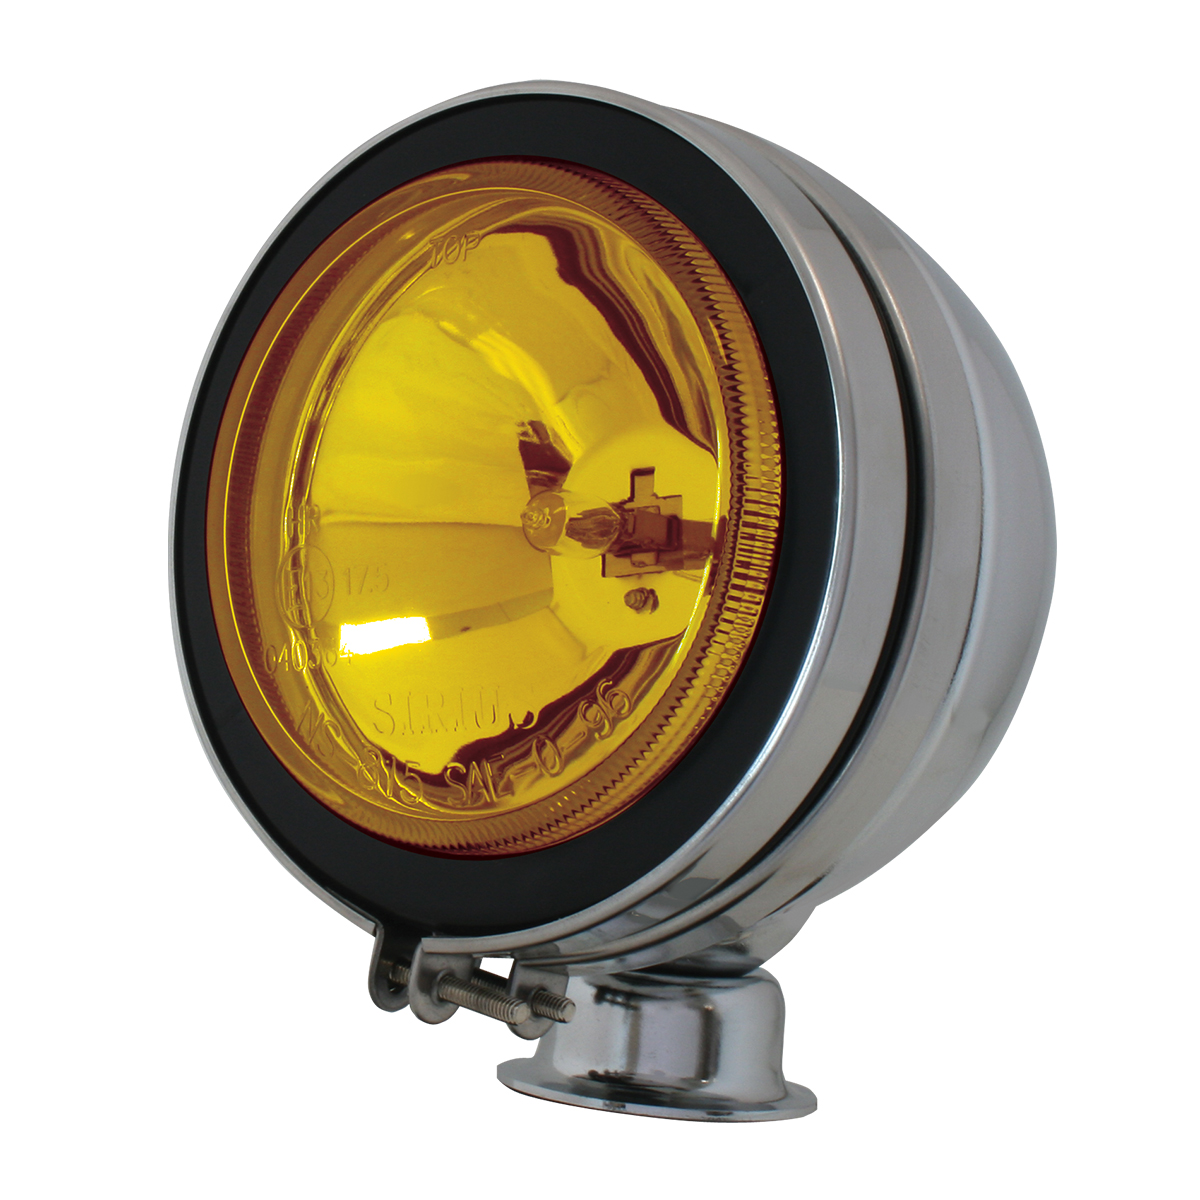 "#80631 5"" Chrome Plated Off-Road Light 55 watts - Amber"